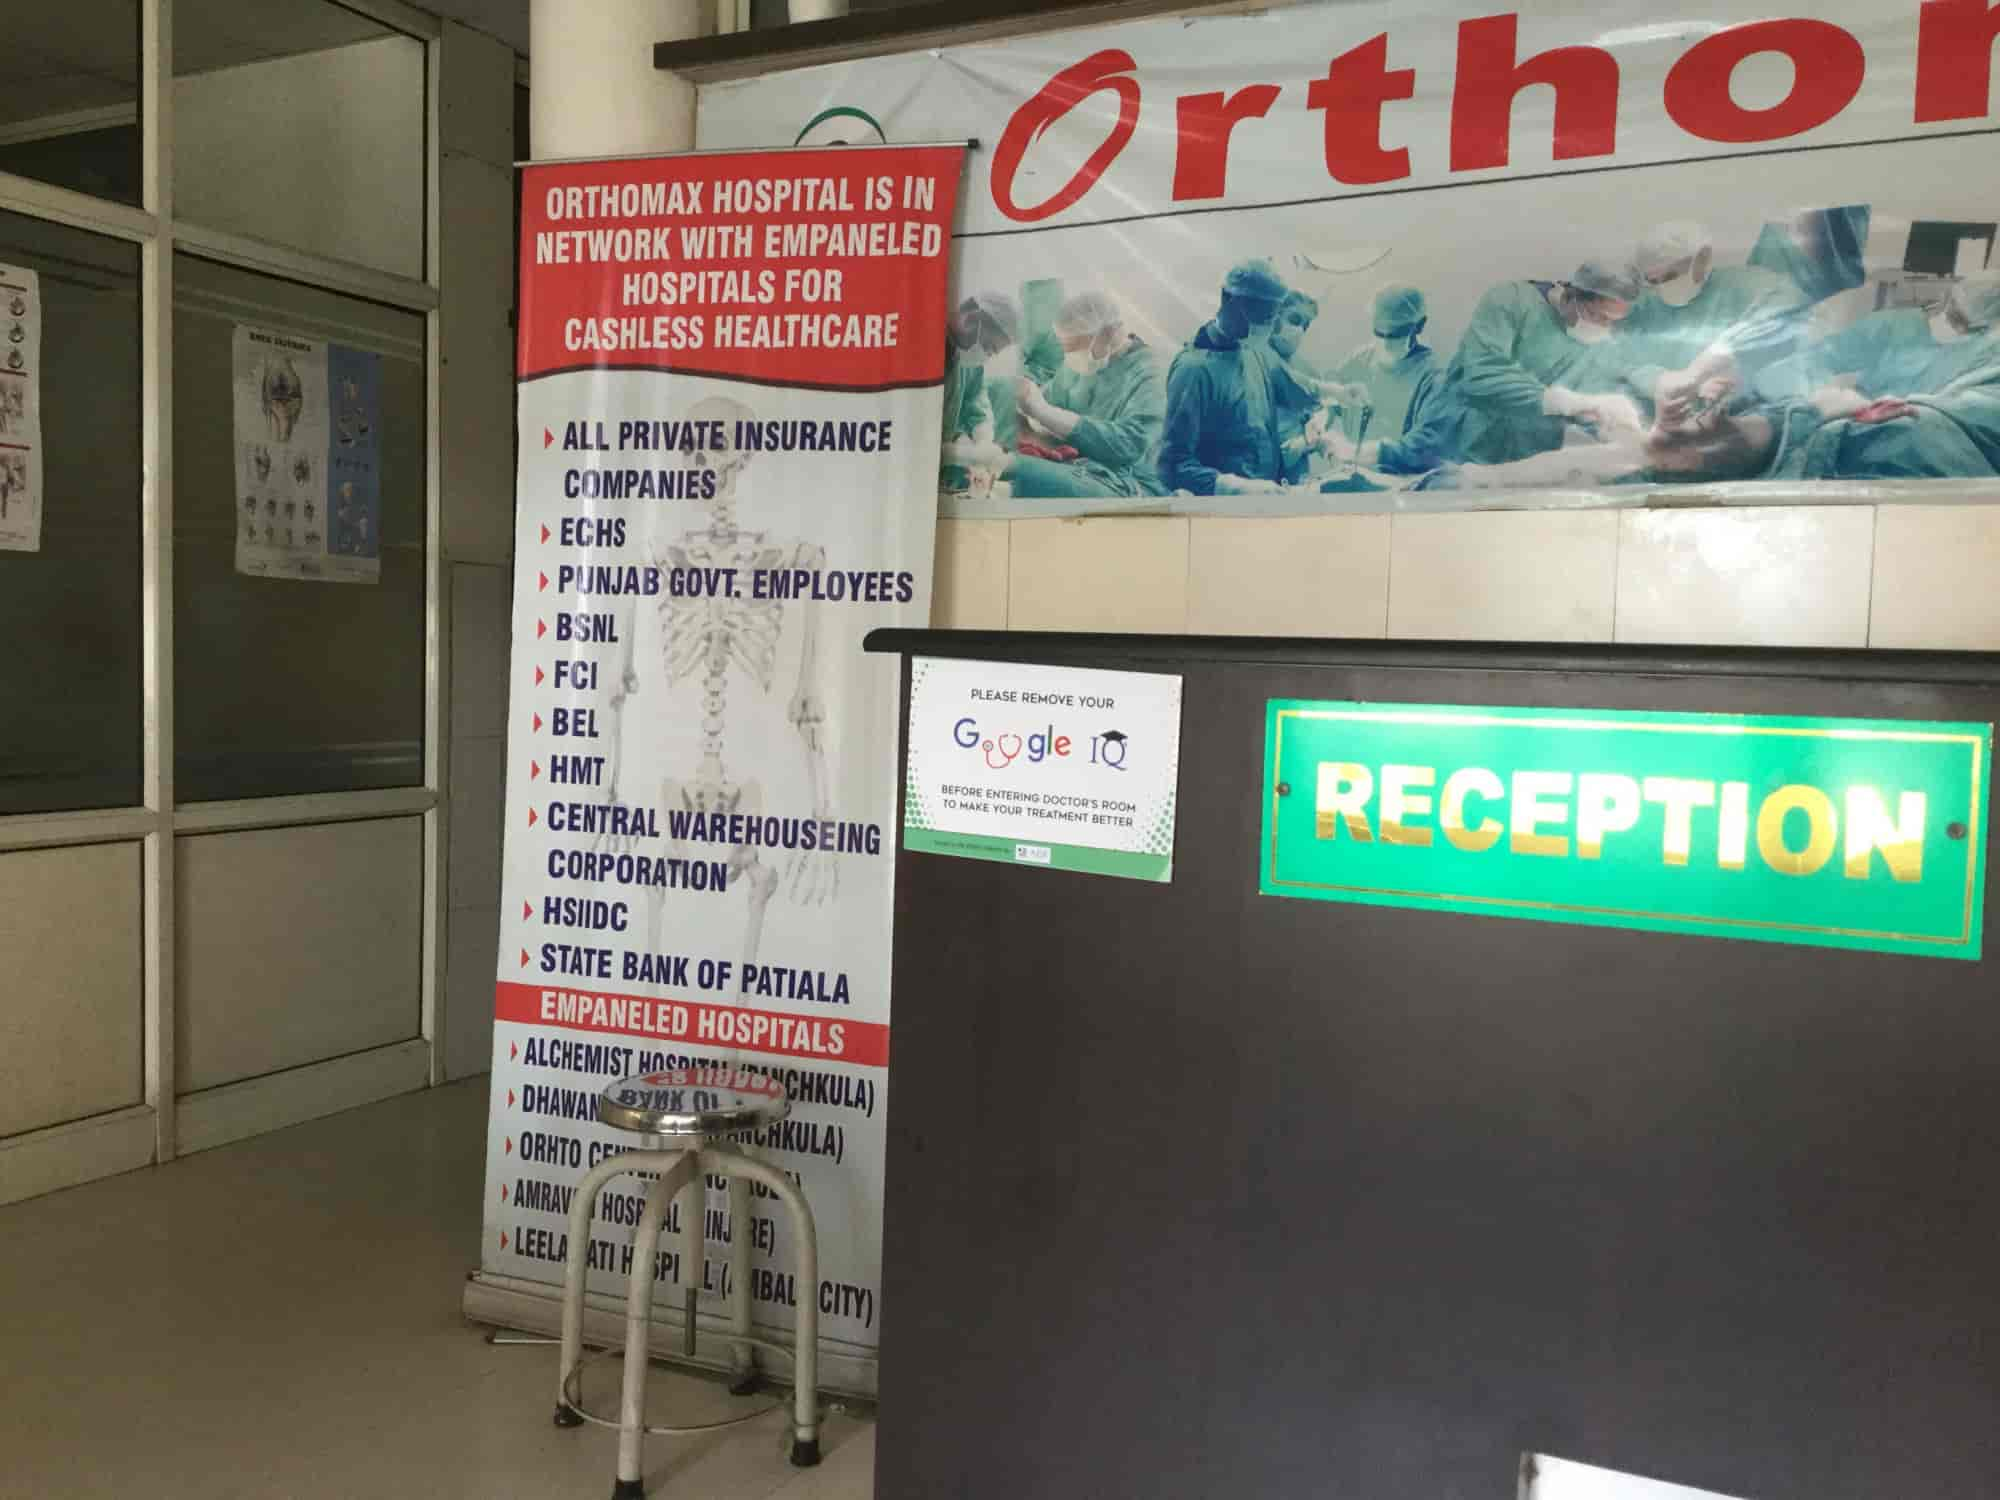 Orthomax Bone And Joint Hospital, Derabassi - Hospitals in